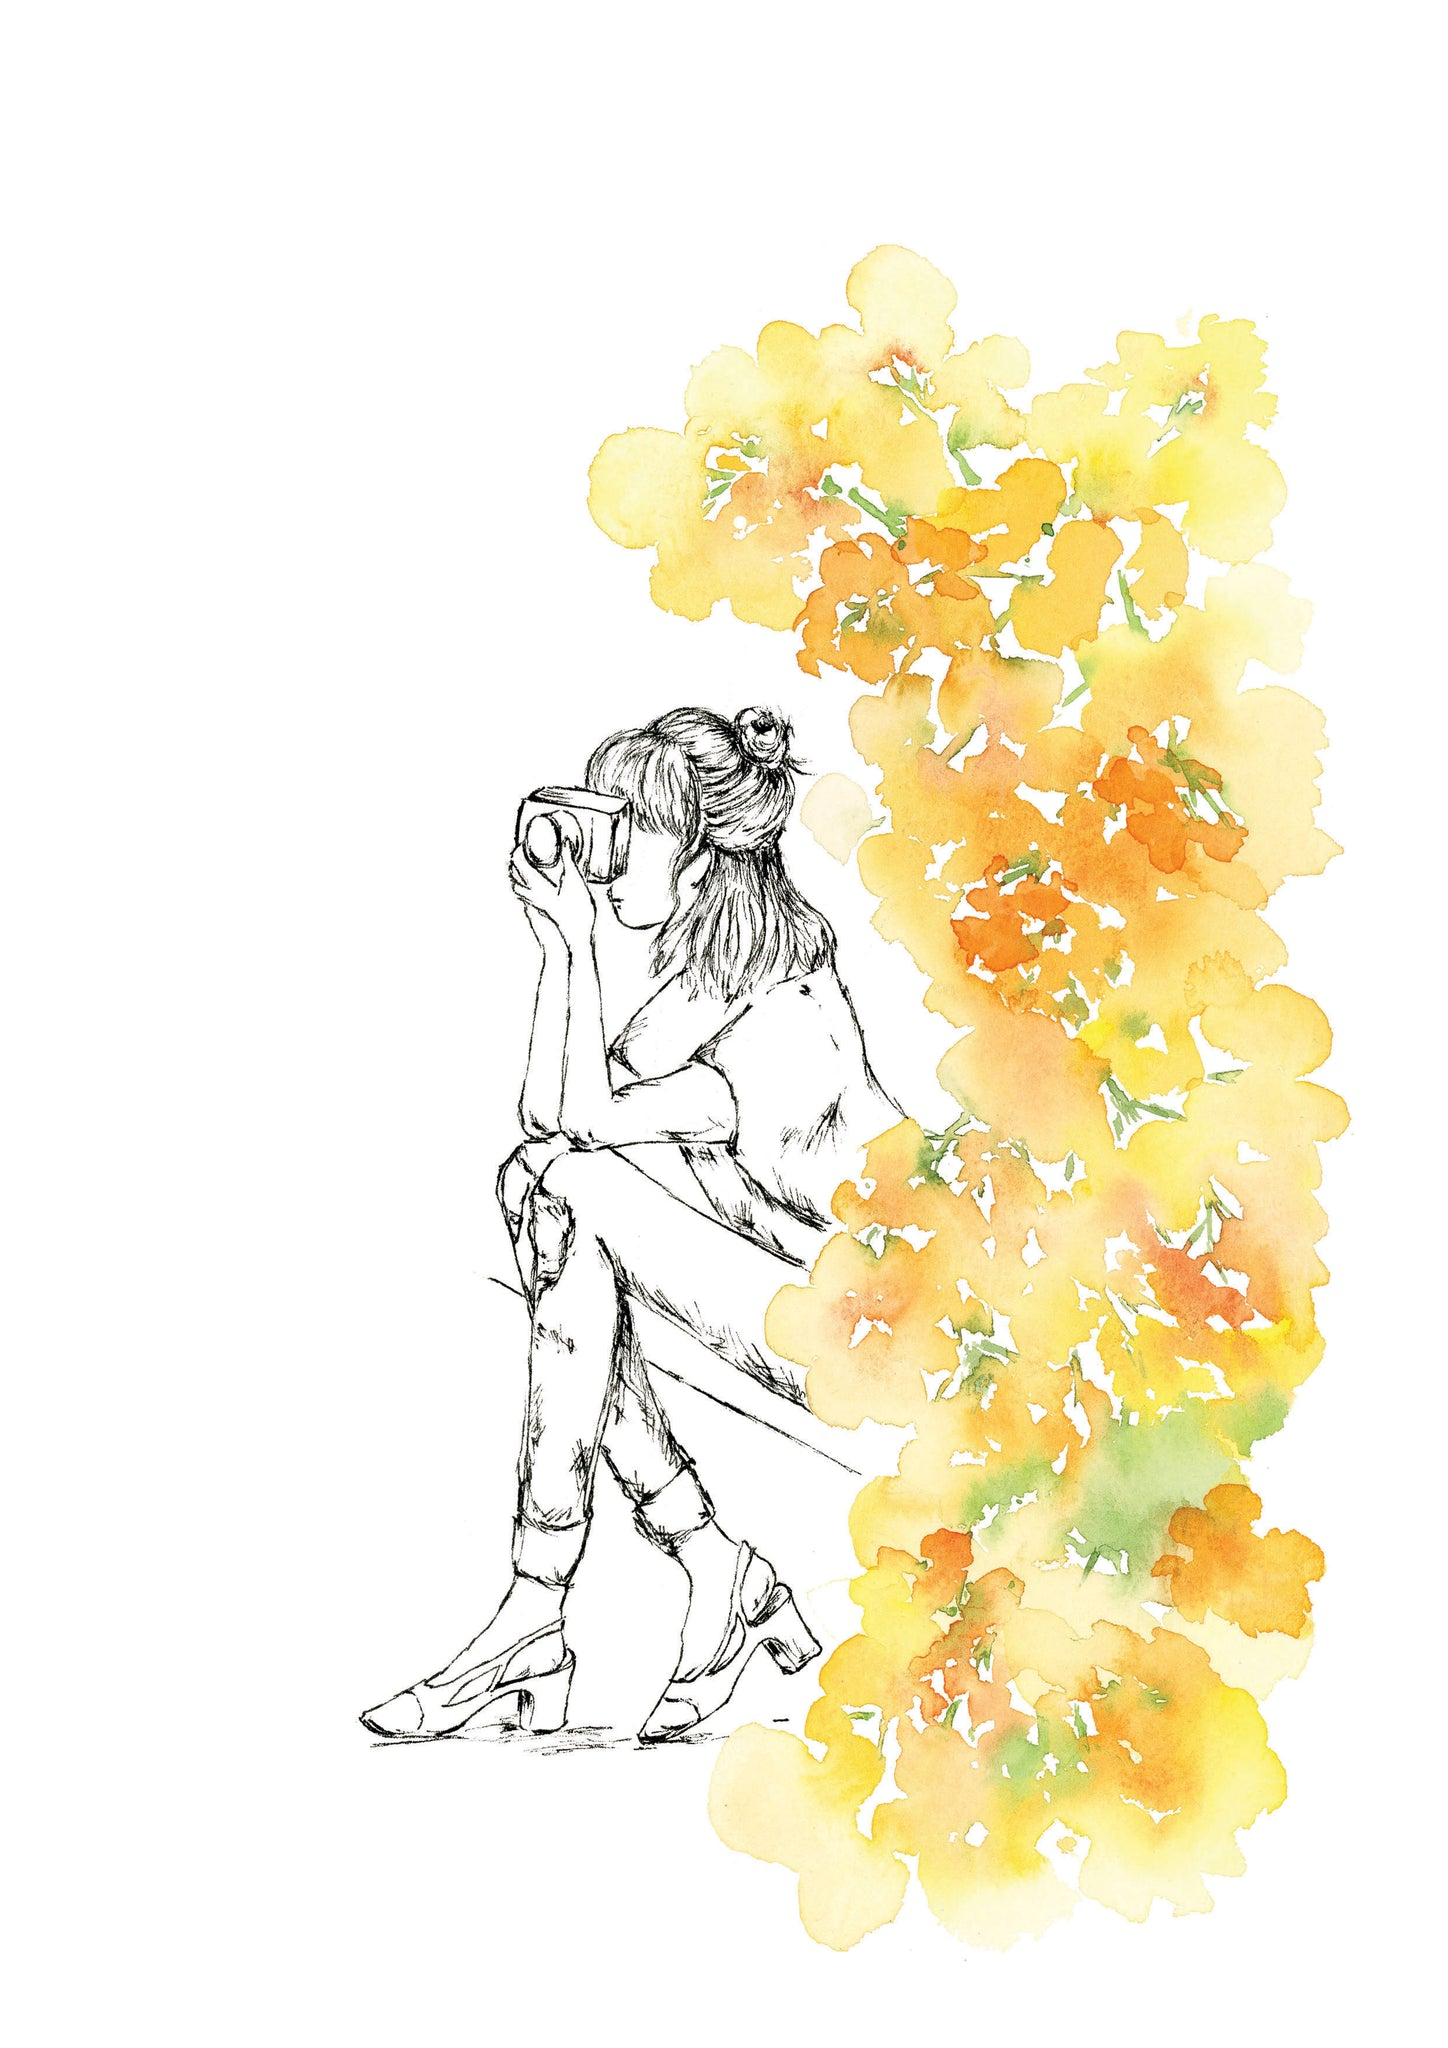 Watercolour art print of a woman photographer surrounded by flowers. By For My dearest.